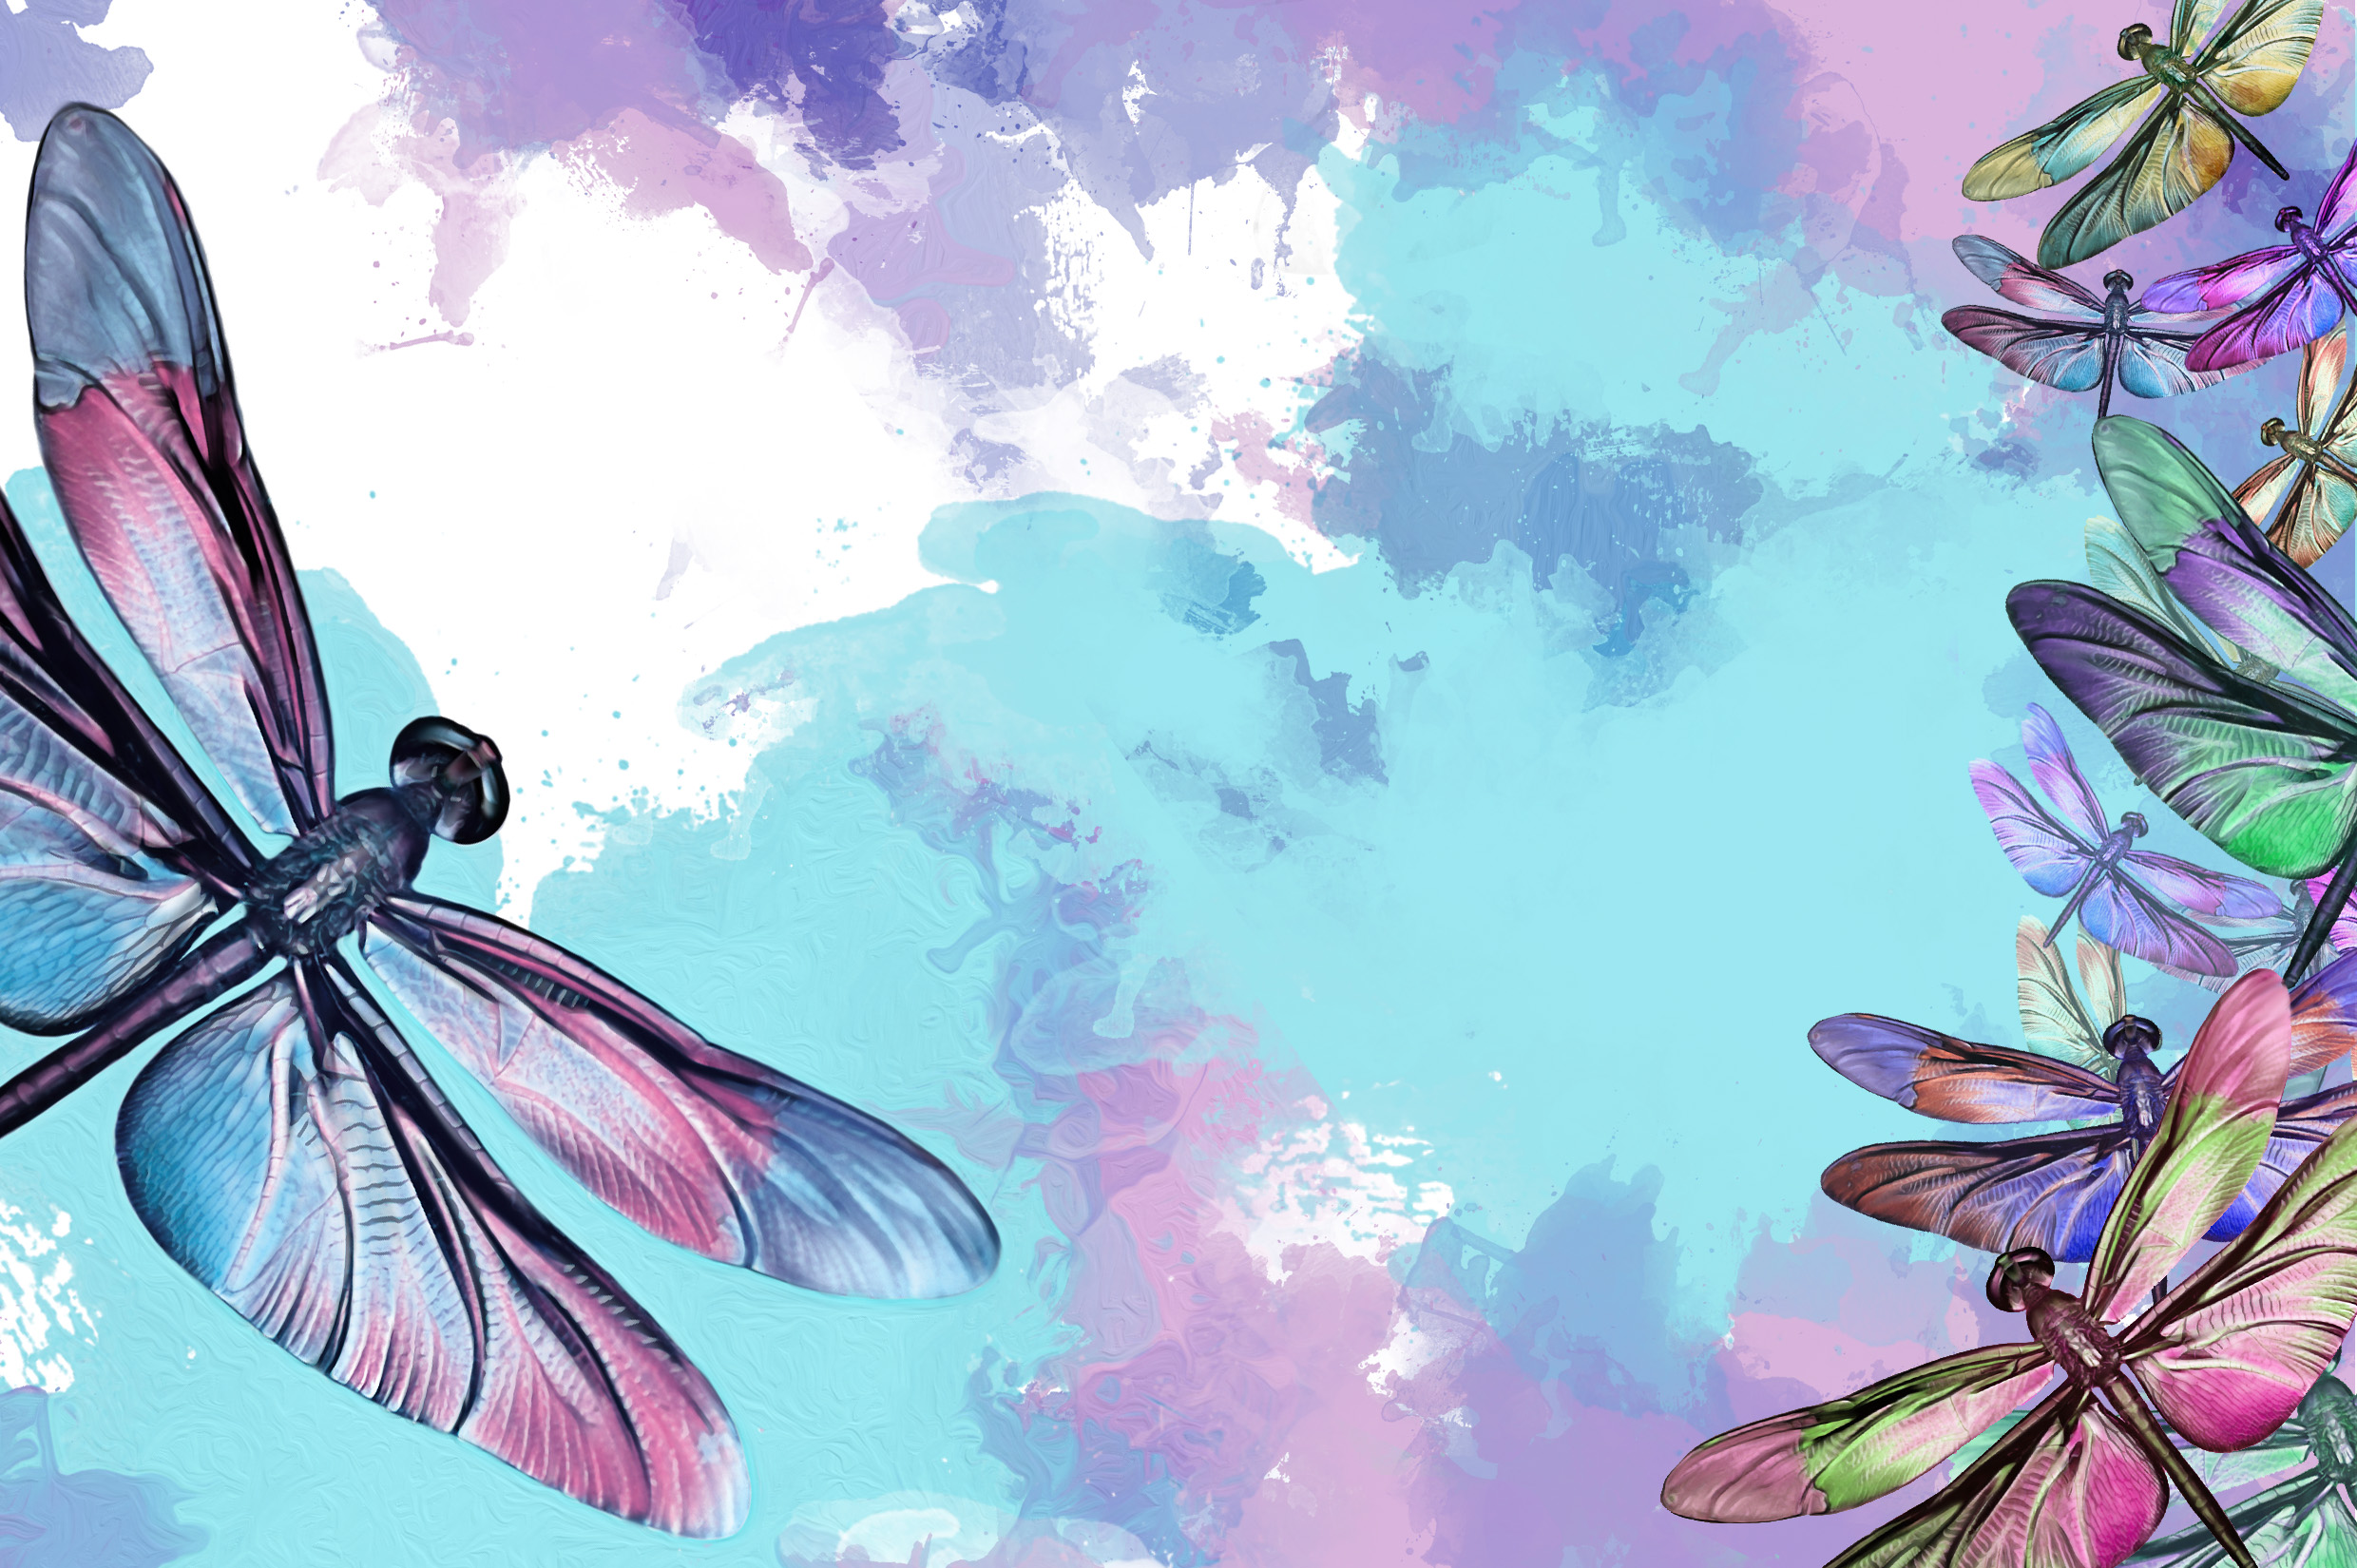 Dragon Fly's